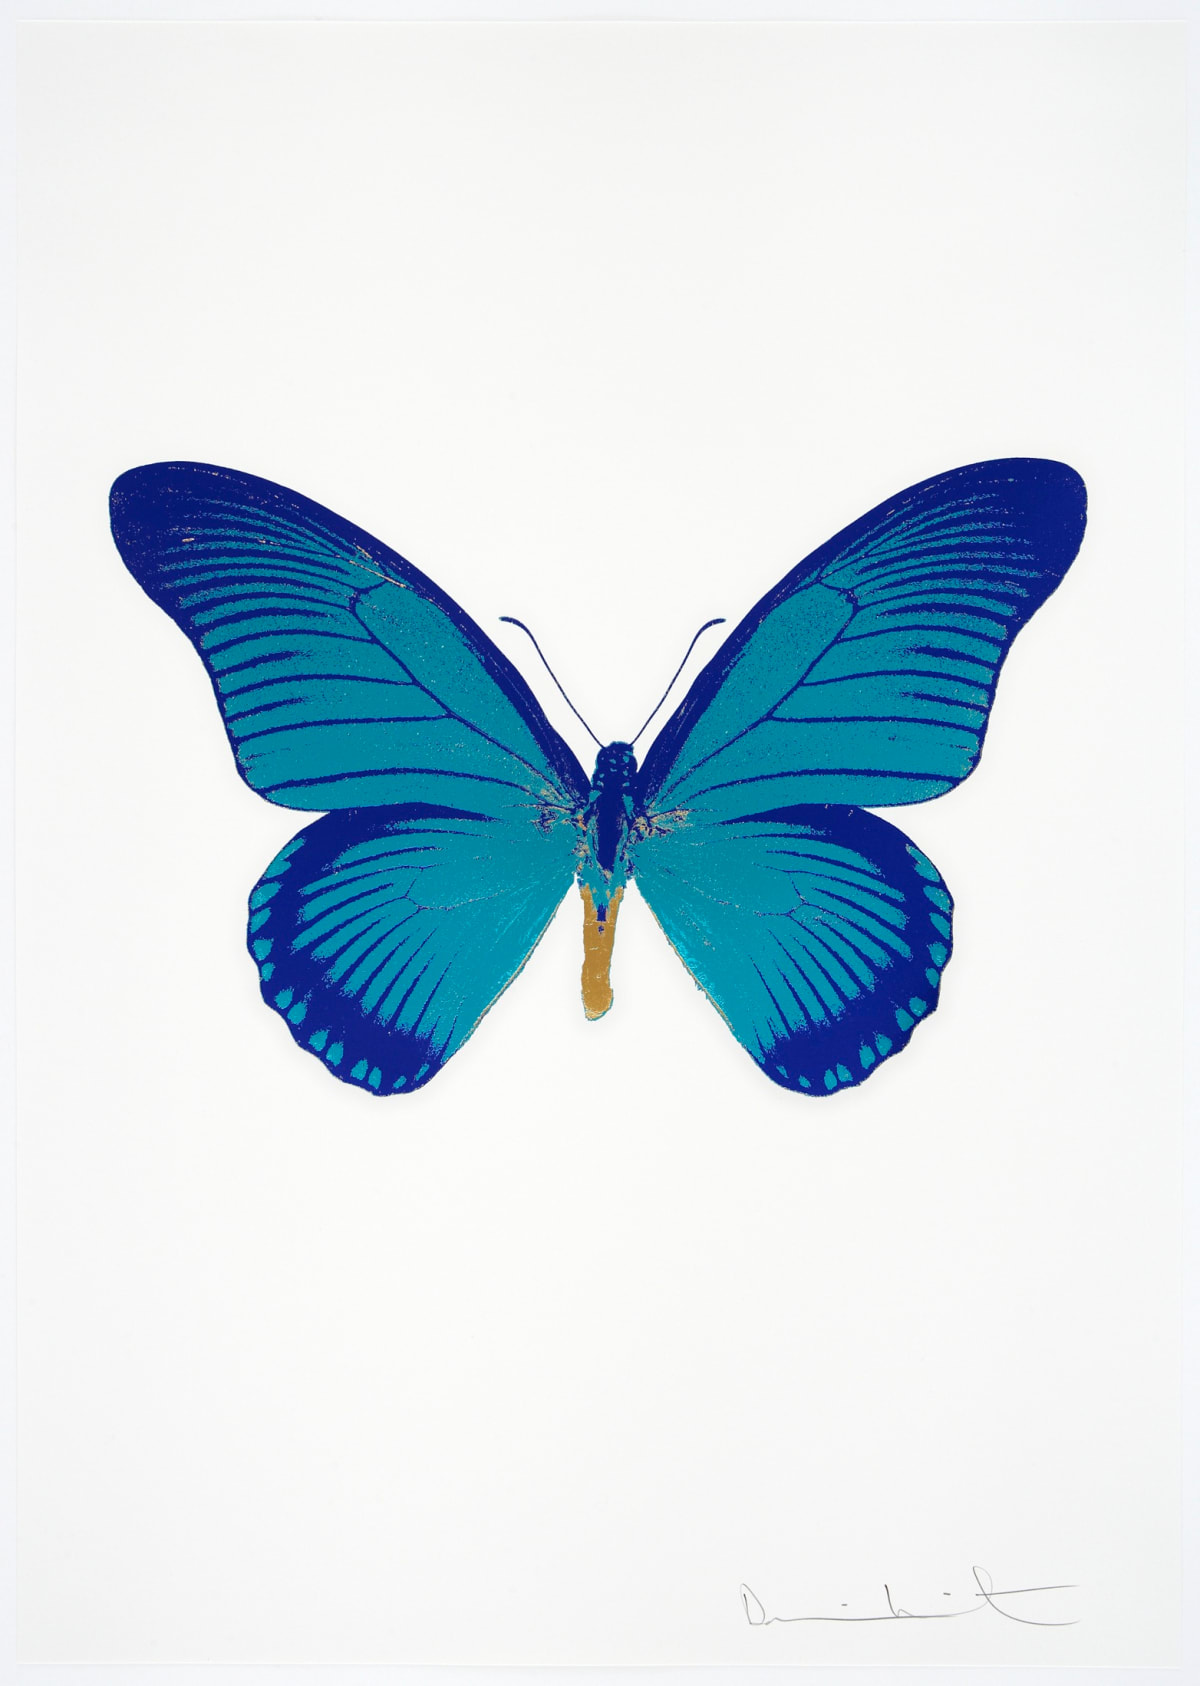 Damien Hirst The Souls IV - Topaz/Westminster Blue/African Gold Damien Hirst butterfly foil print for sale Damien Hirst print for sale , 2010 3 colour foil block on 300gsm Arches 88 archival paper. Signed and numbered. Published by Paul Stolper and Other Criteria 72 x 51cm OC8046 / 1418-69 Edition of 15